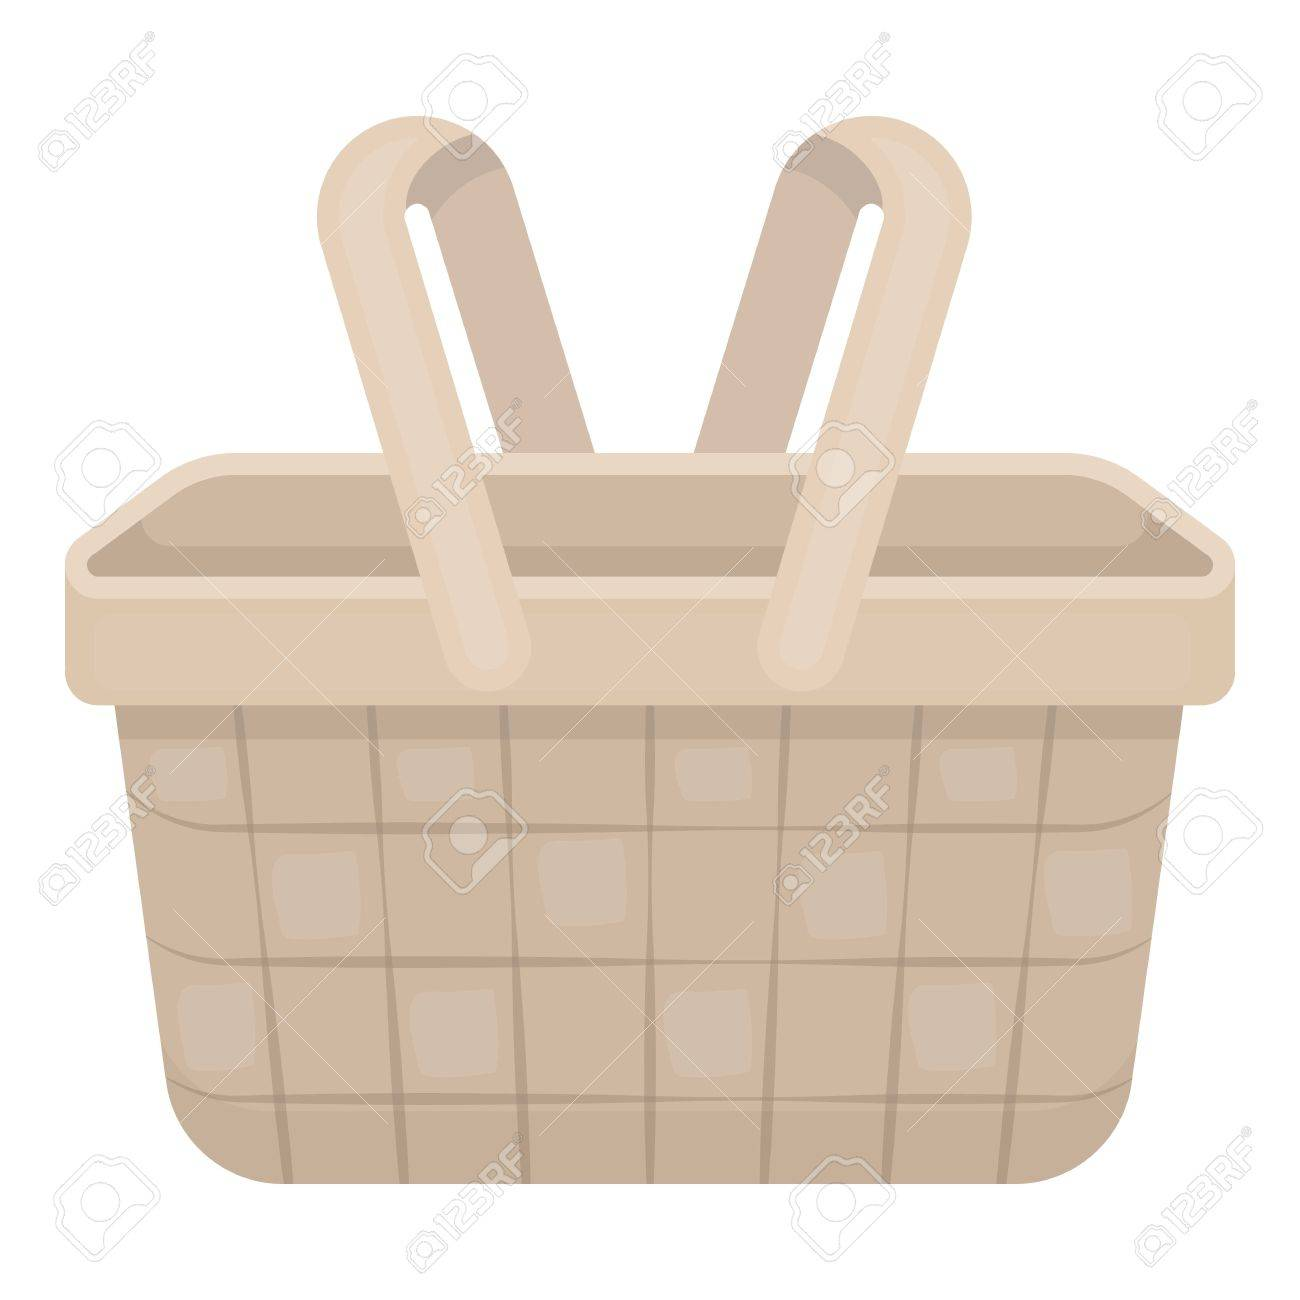 Picnic Basket Icon In Cartoon Style Isolated On White Background Royalty Free Cliparts Vectors And Stock Illustration Image 64178601